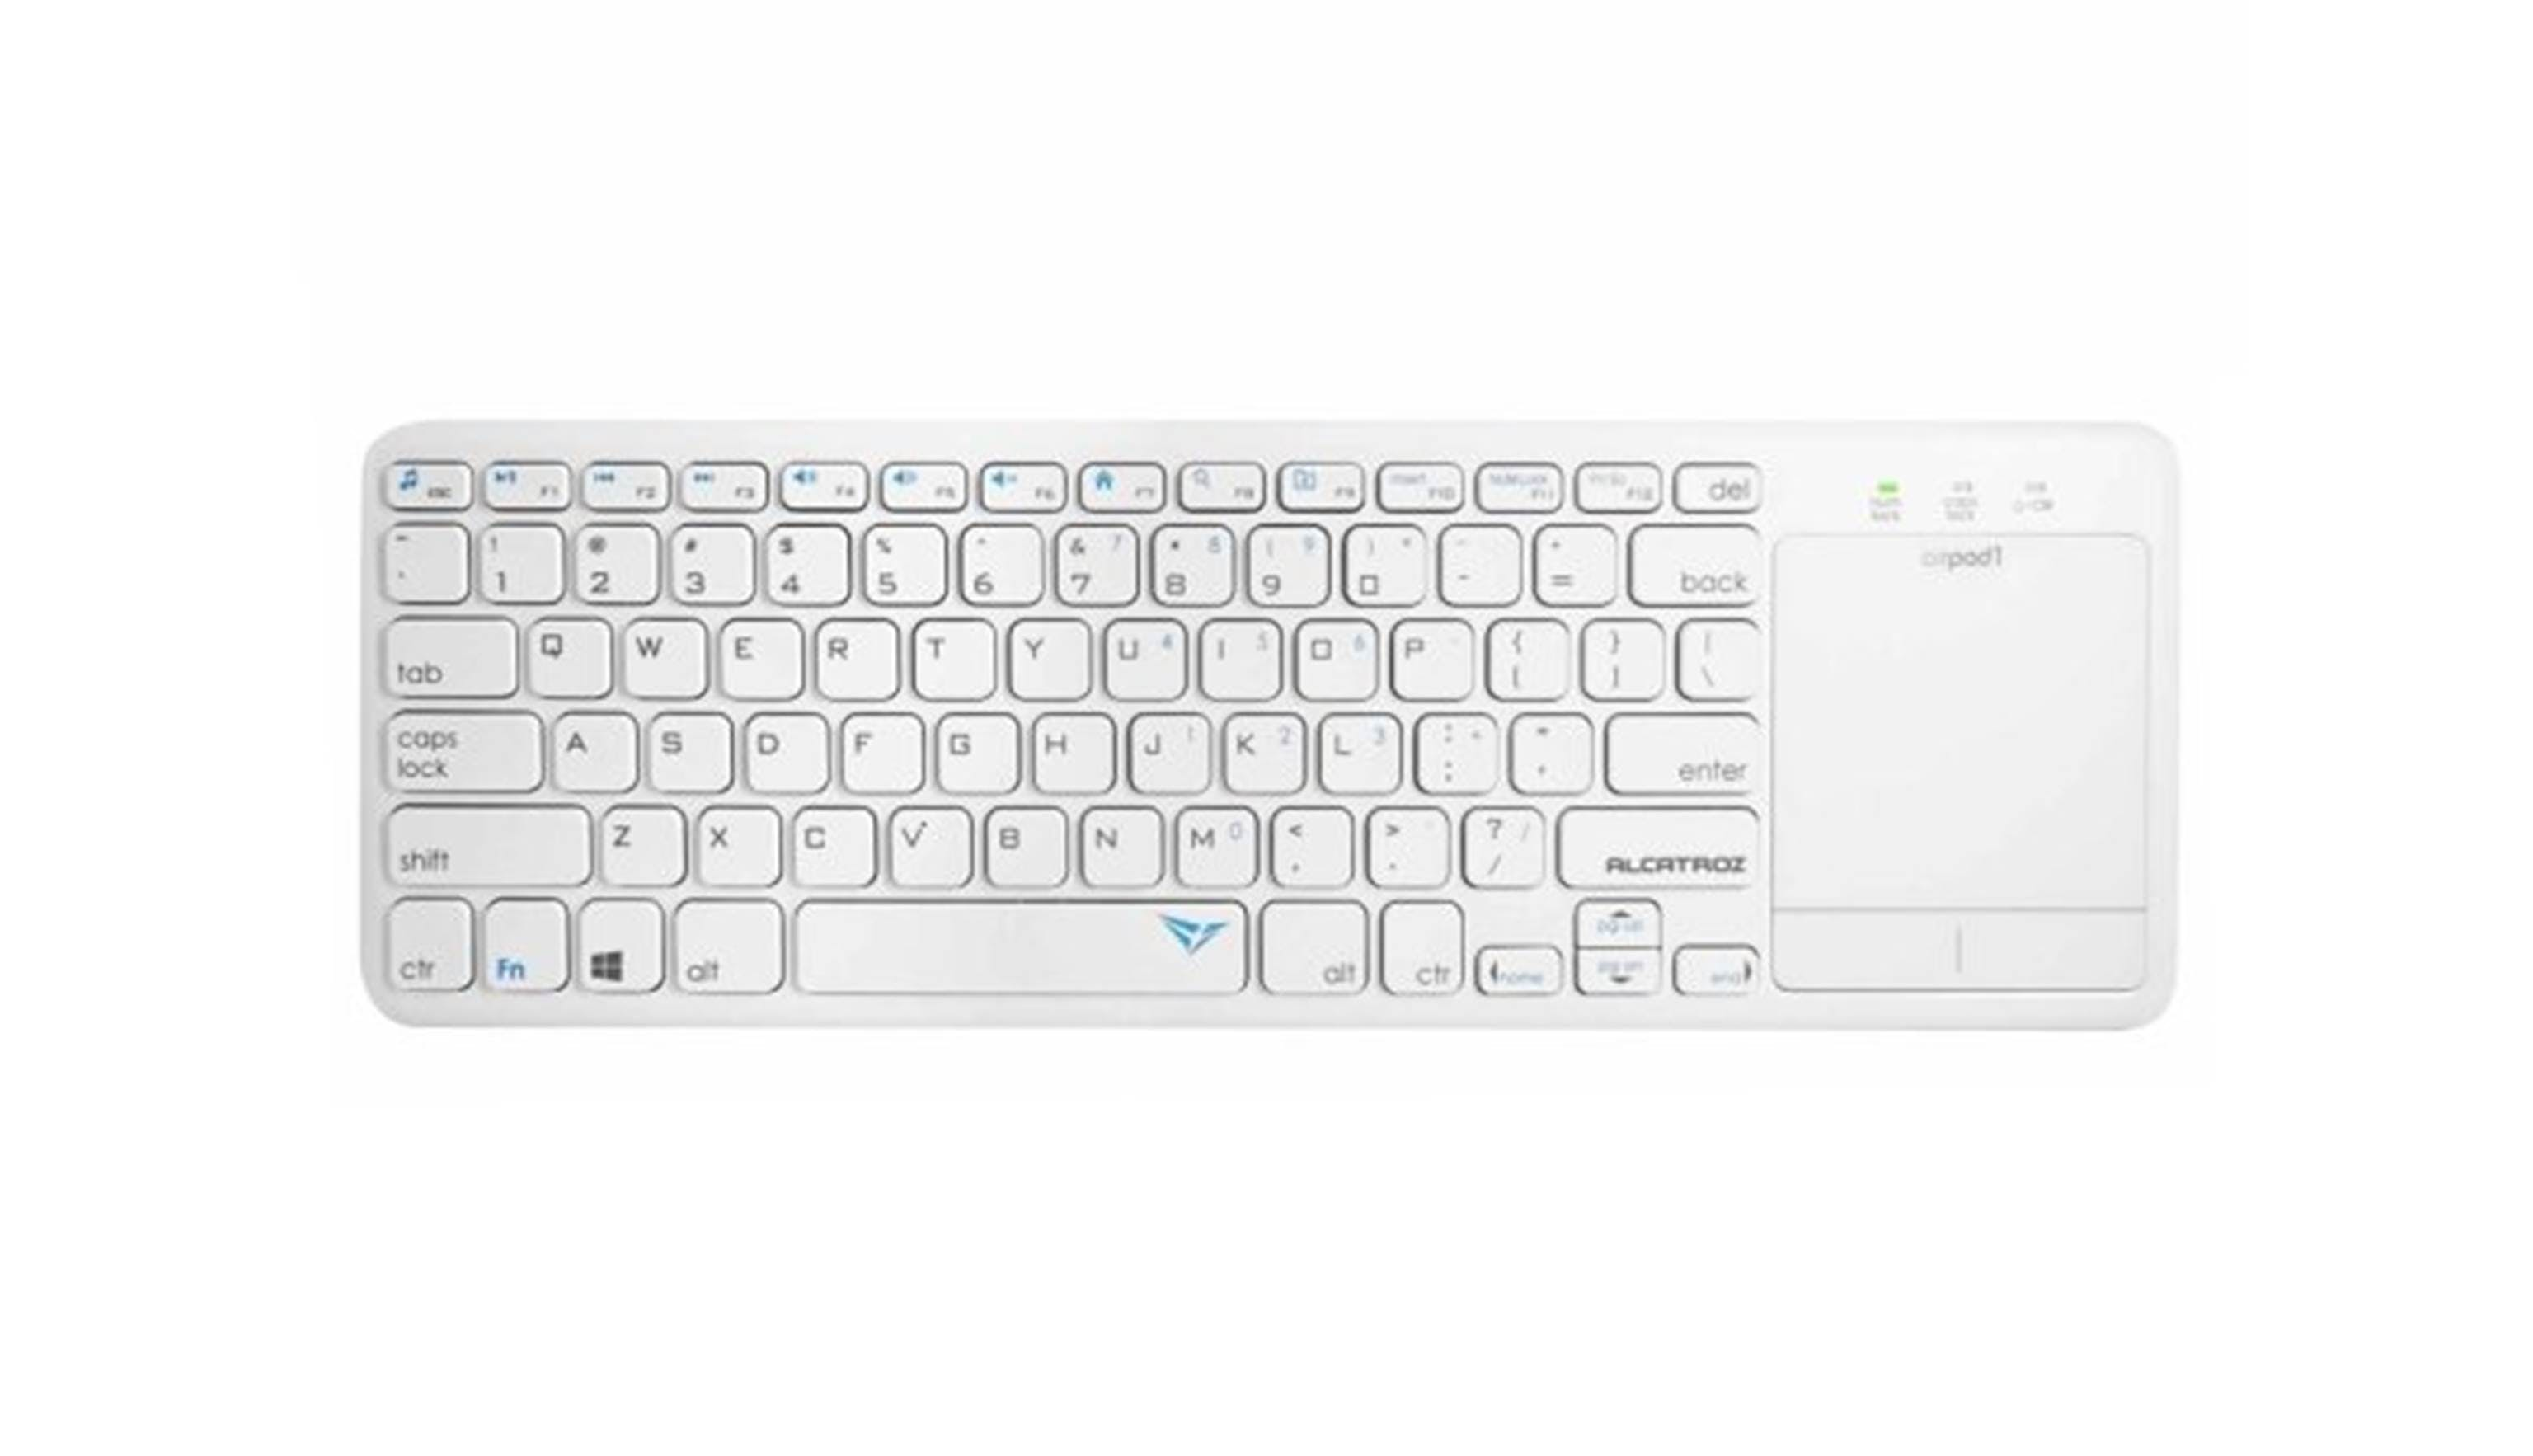 Alcatroz AirPad 1 Keyboard - White